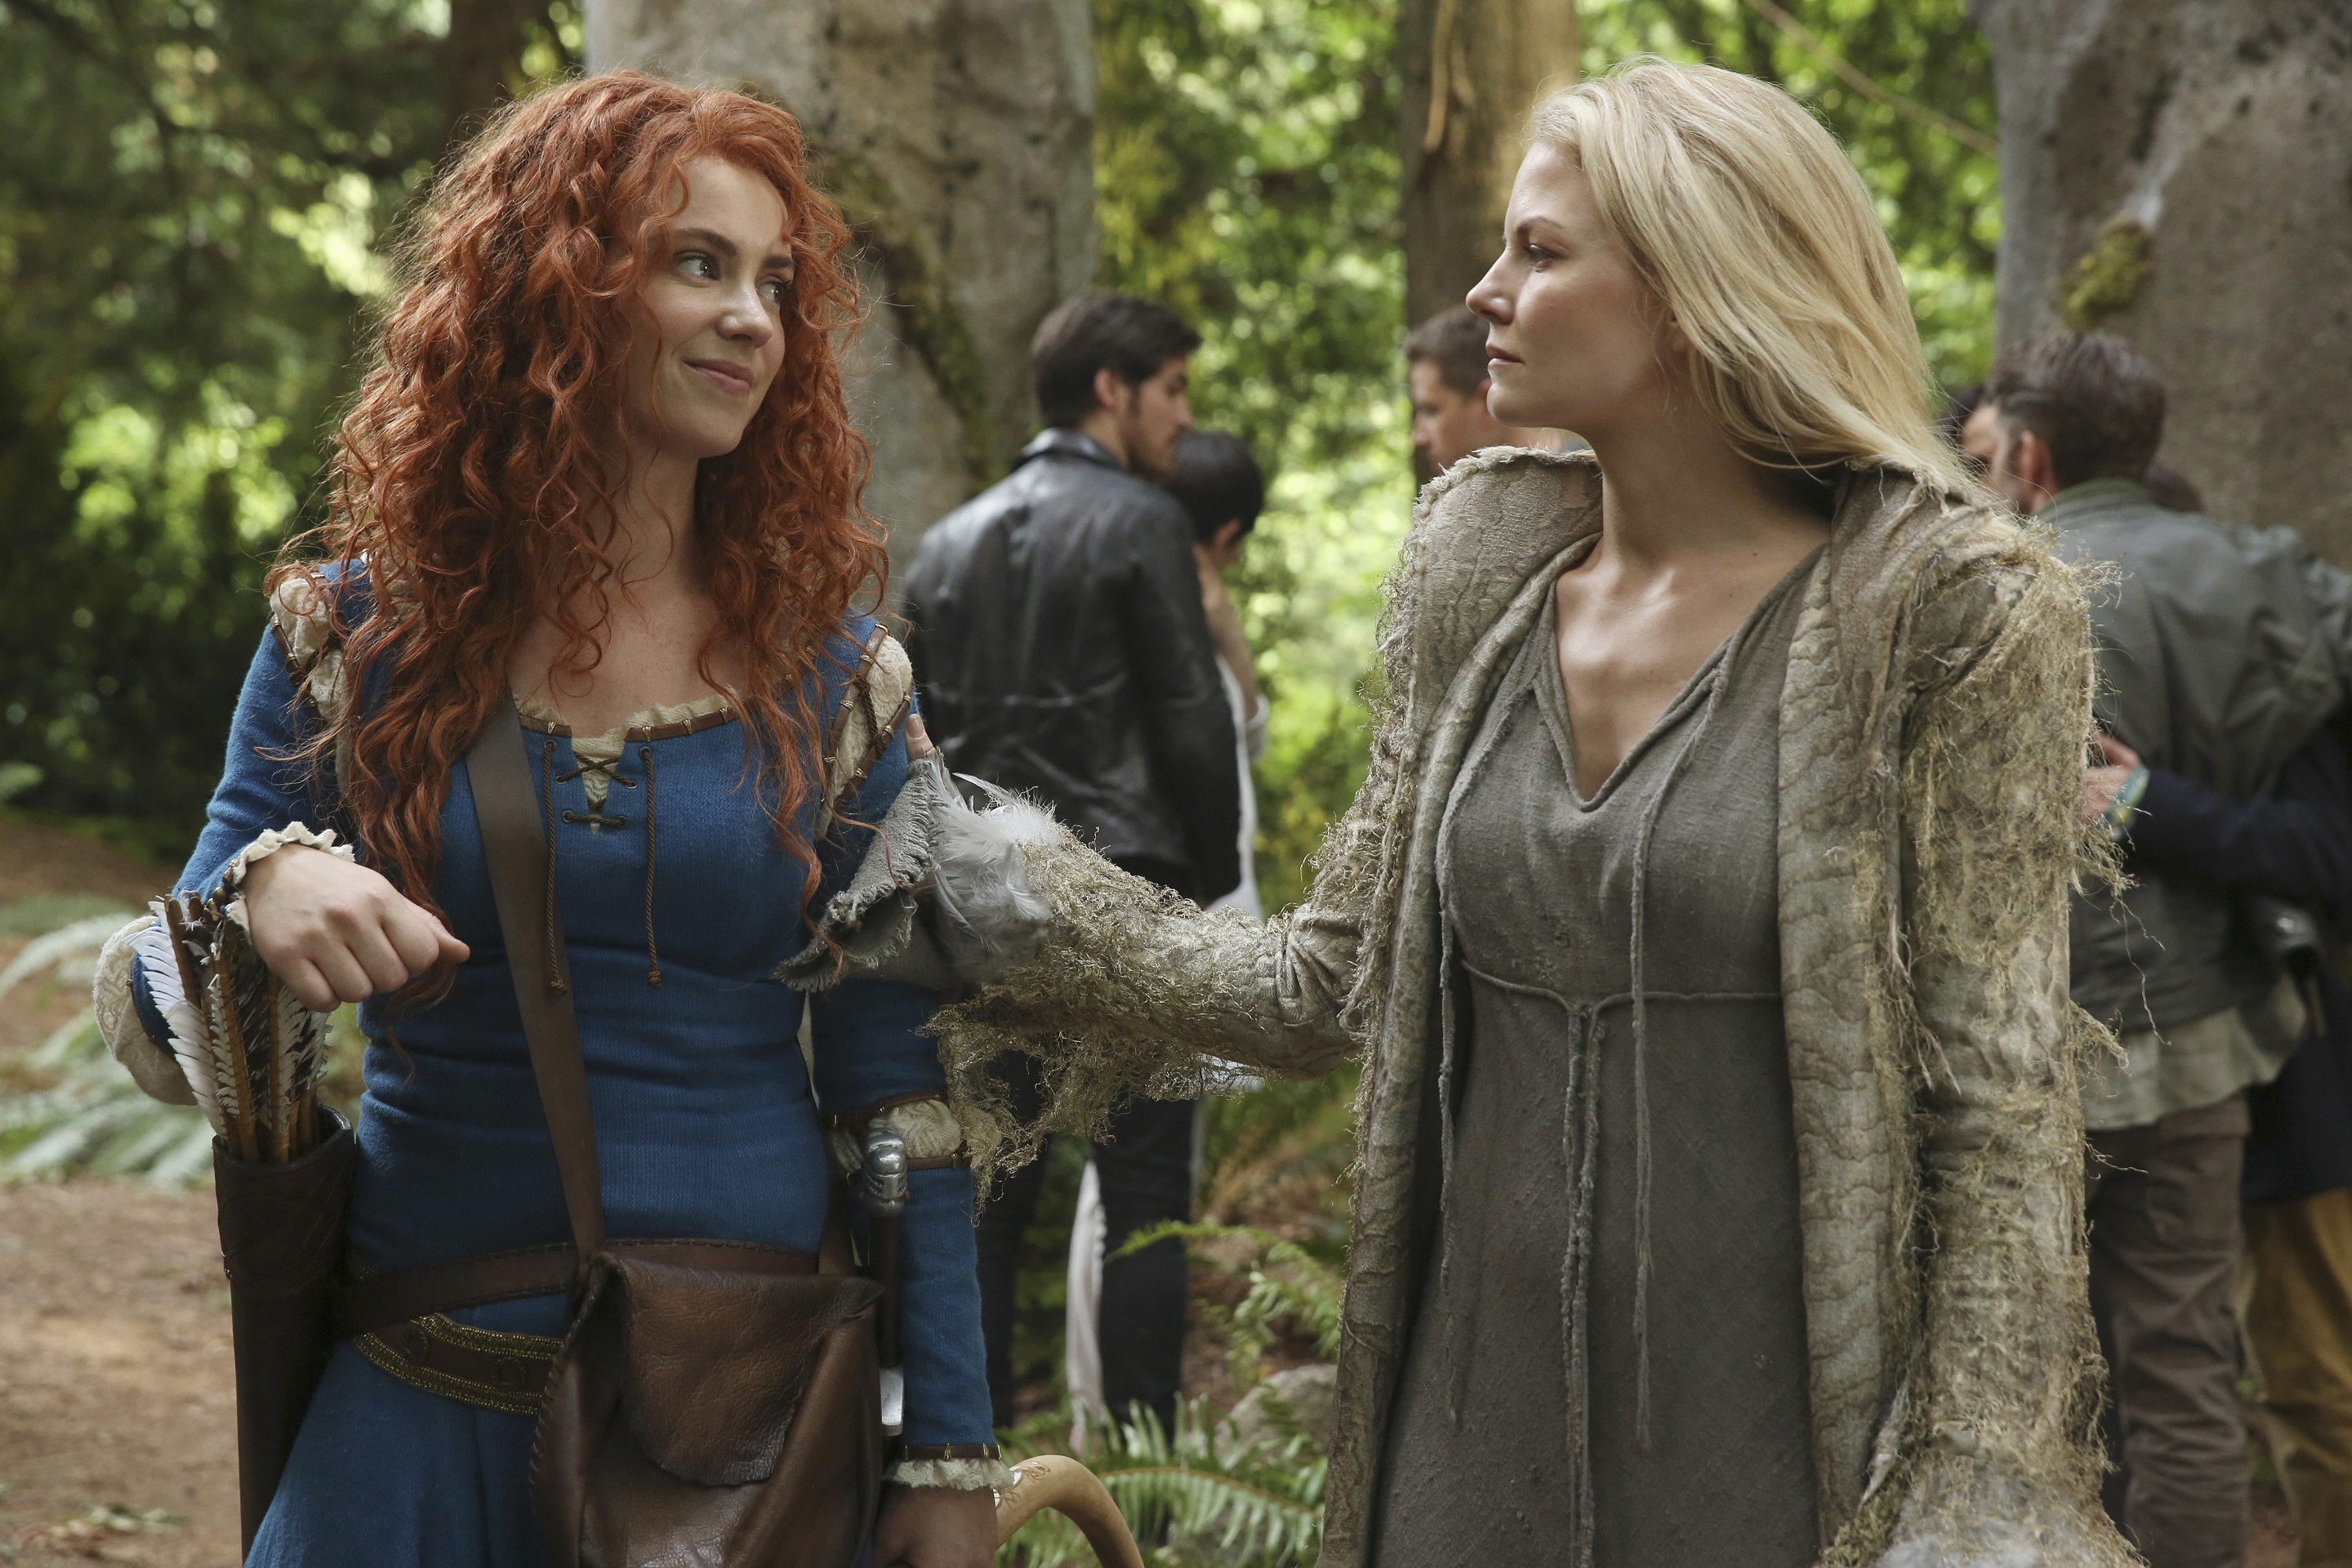 FOREGROUND: AMY MANSON, JENNIFER MORRISON